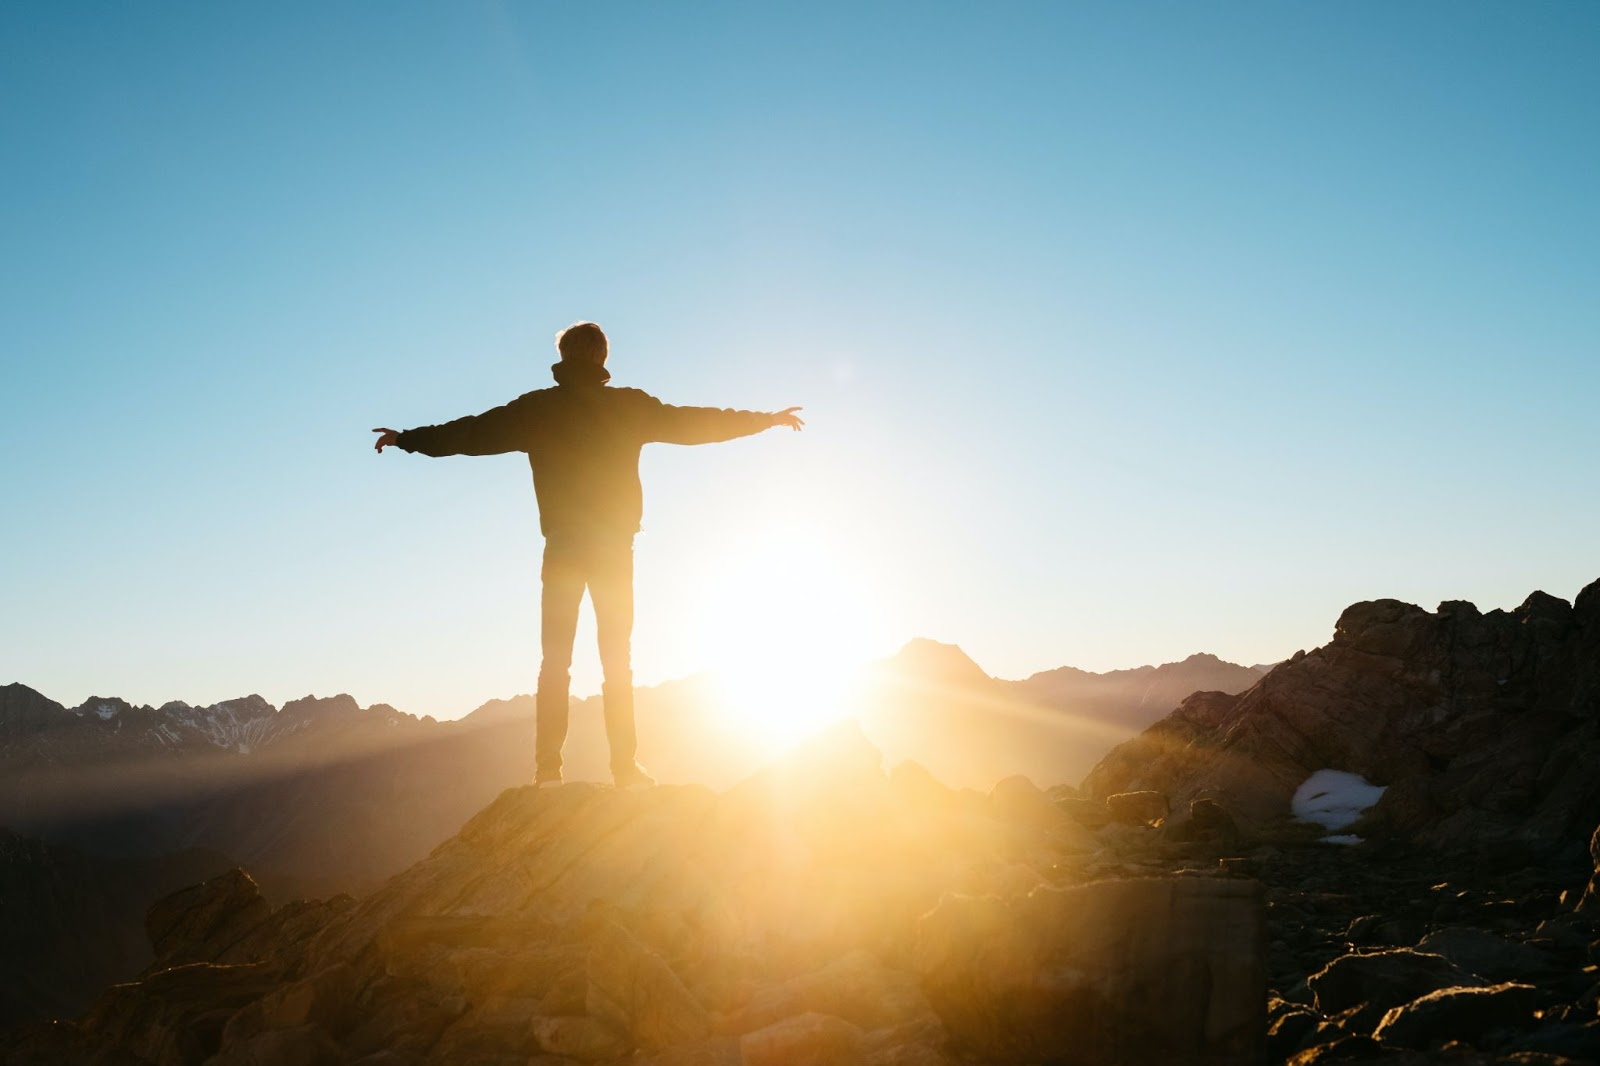 Person facing a sunrise with their arms outstretched, photo by Pablo Heimplatz, sourced from Unsplash